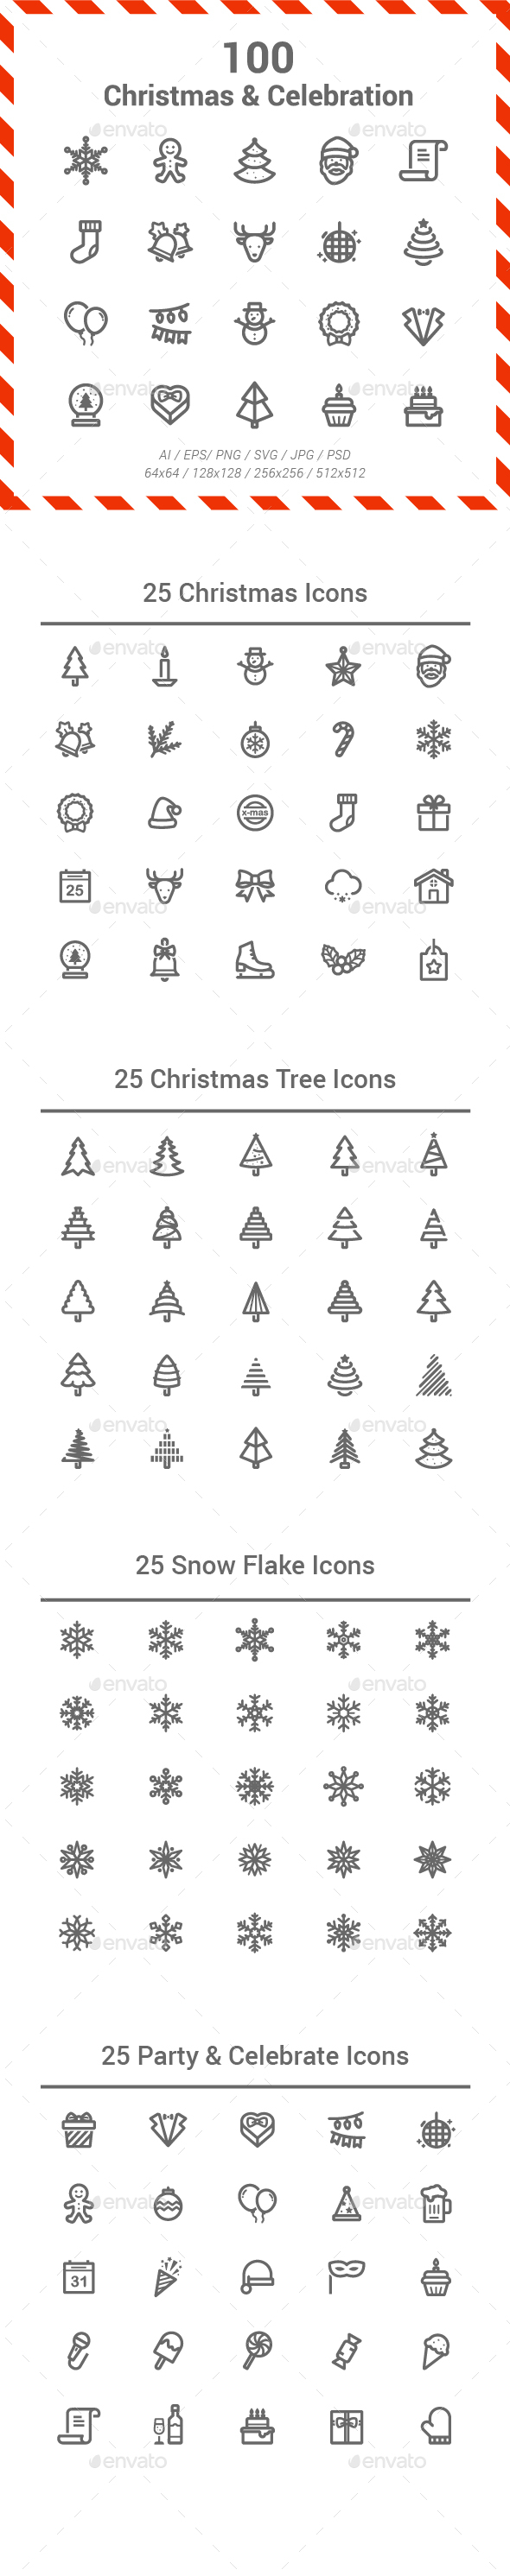 GraphicRiver 100 Christmas & Celebration Line Icons 21033130